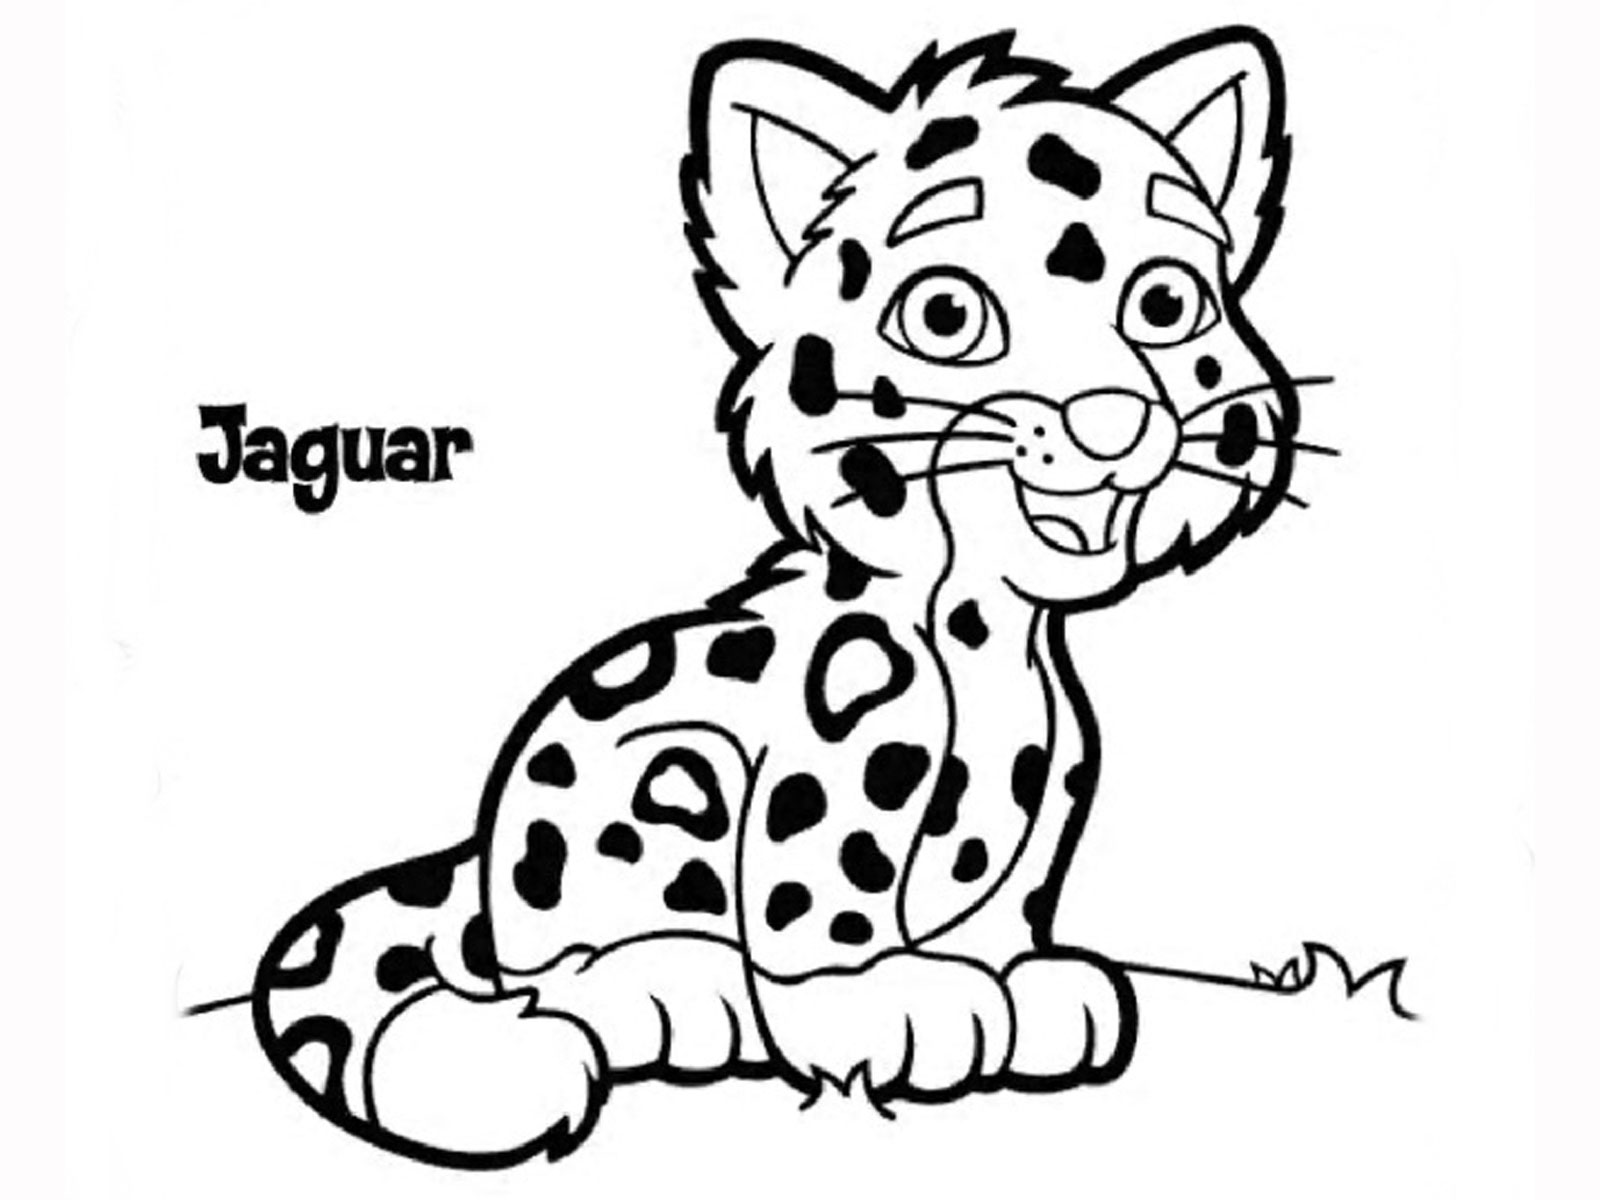 baby cheetah coloring pages cute baby cheetah coloring page netart baby cheetah pages coloring